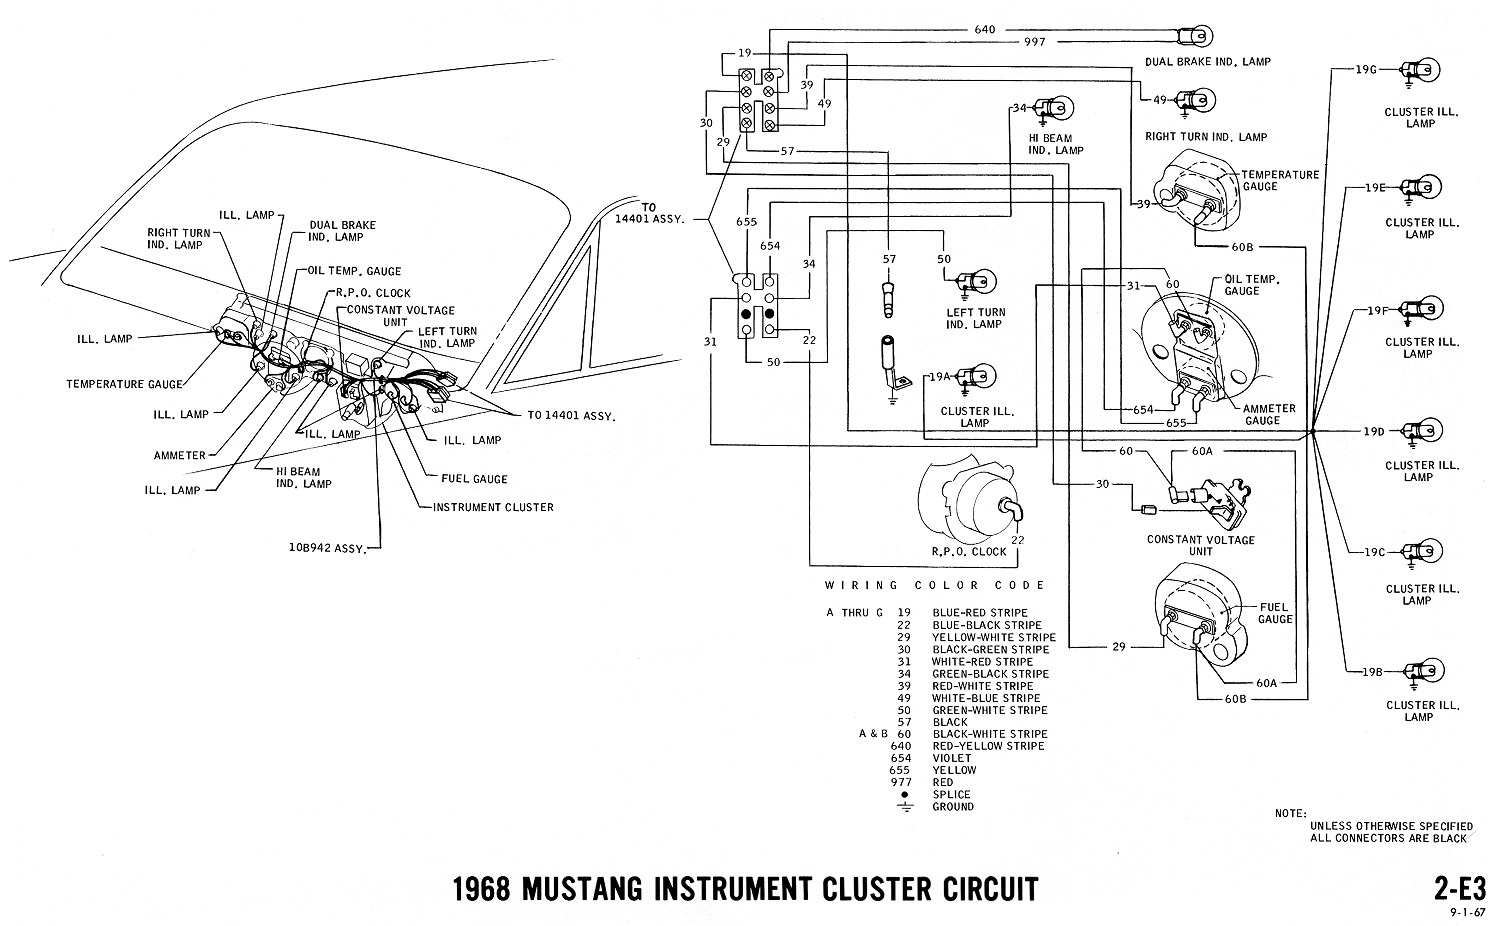 2005 Vw Beetle Vacuum Diagram Books Of Wiring Altima Cluster 1968 Mustang Diagrams And Schematics